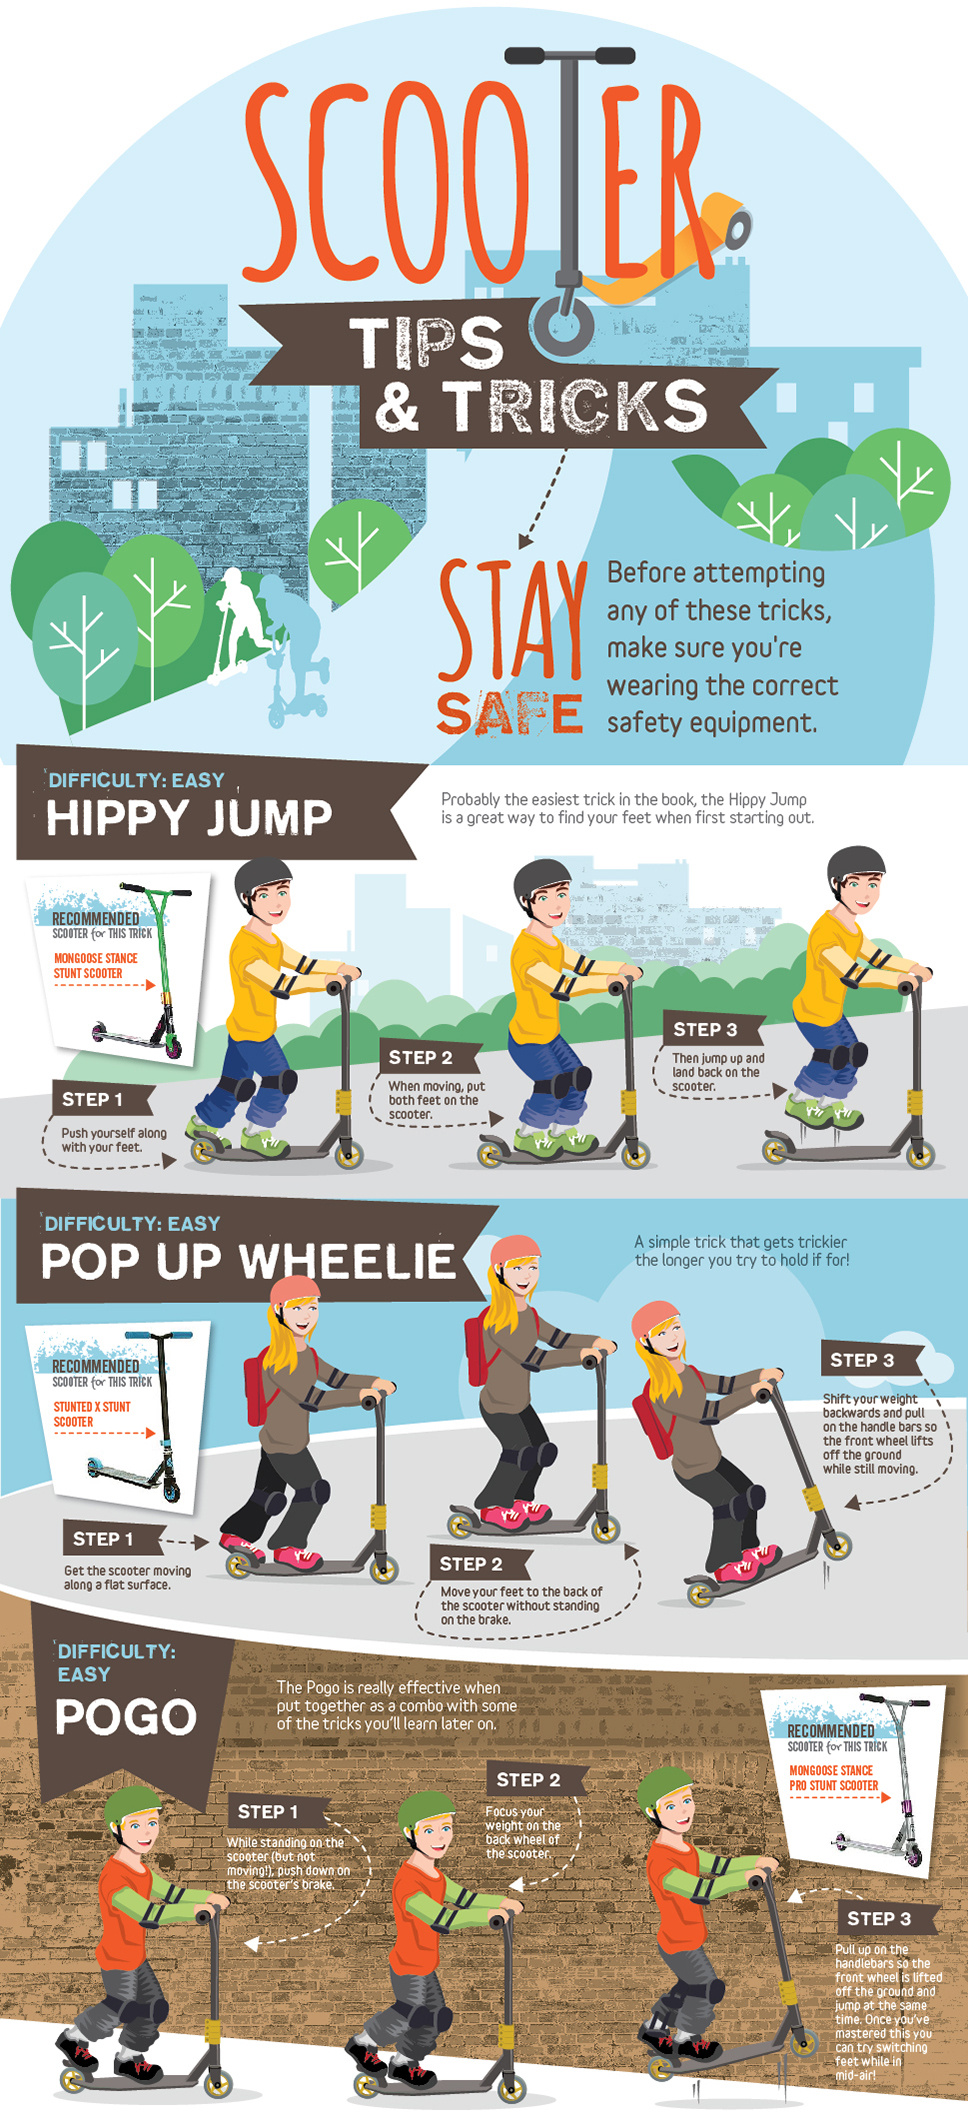 Halfords_Scooter_Infographic-1